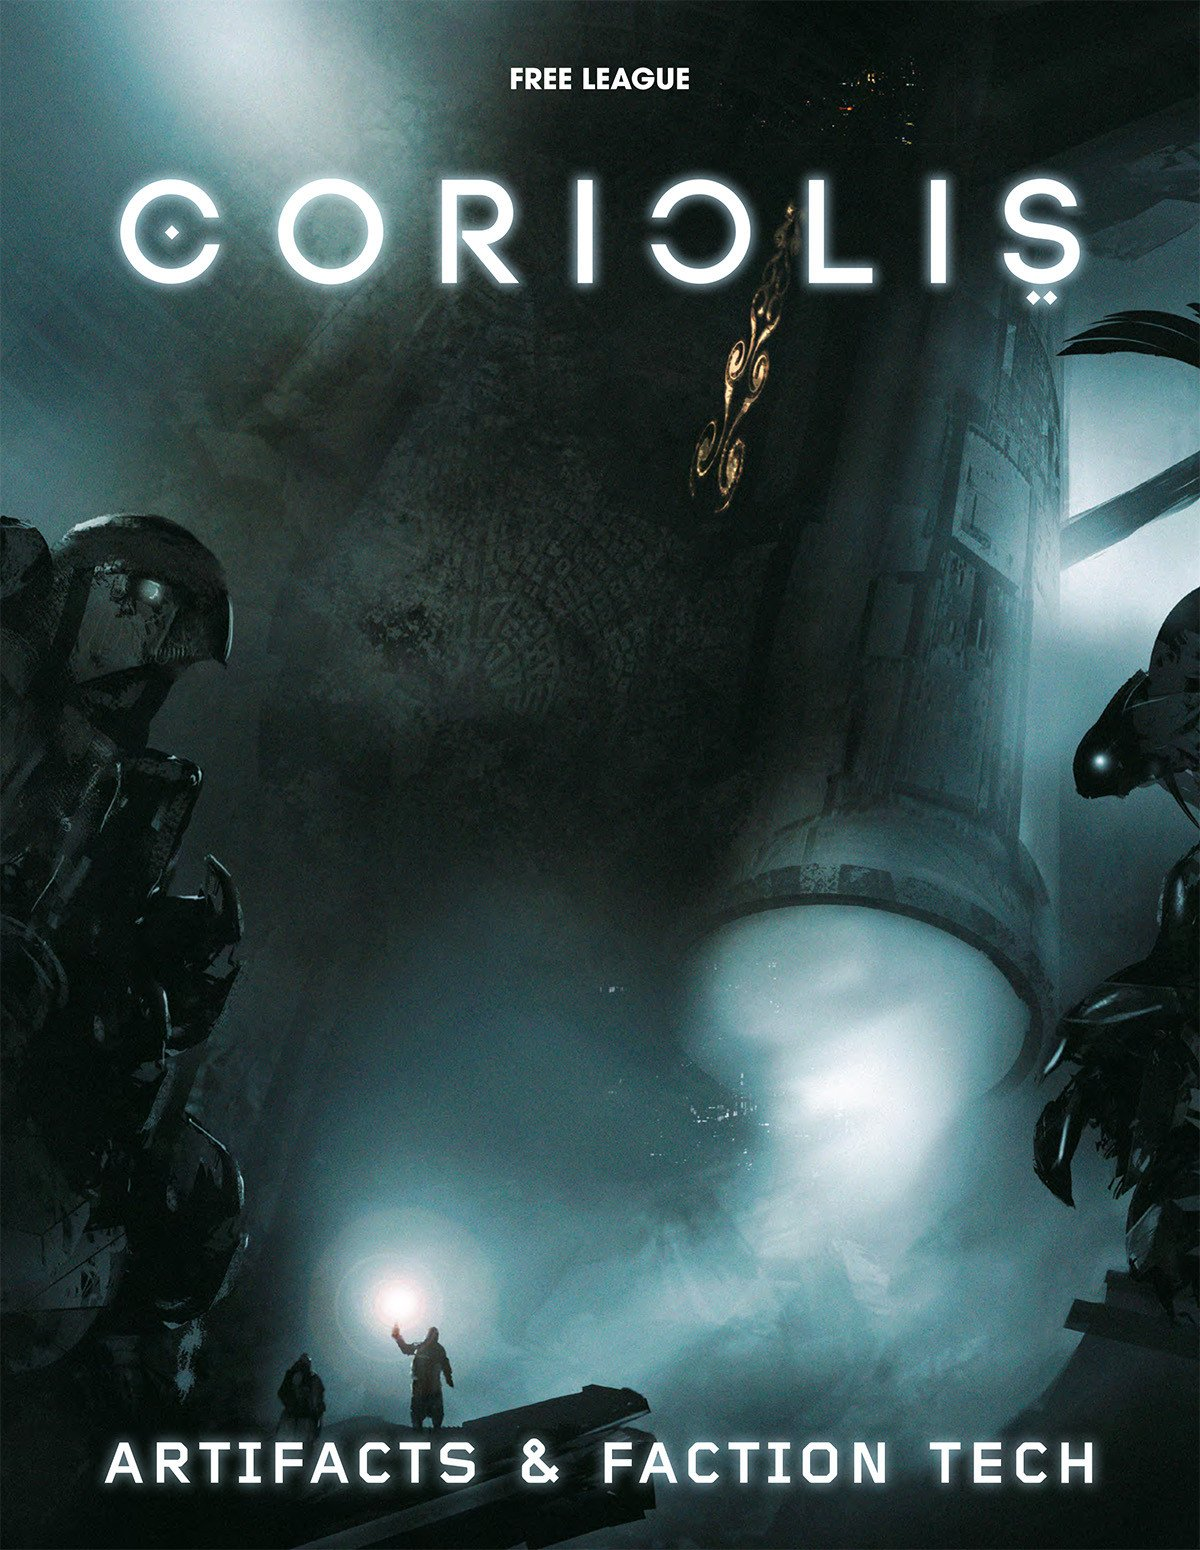 Coriols: Artifacts & Faction Tech - PDF